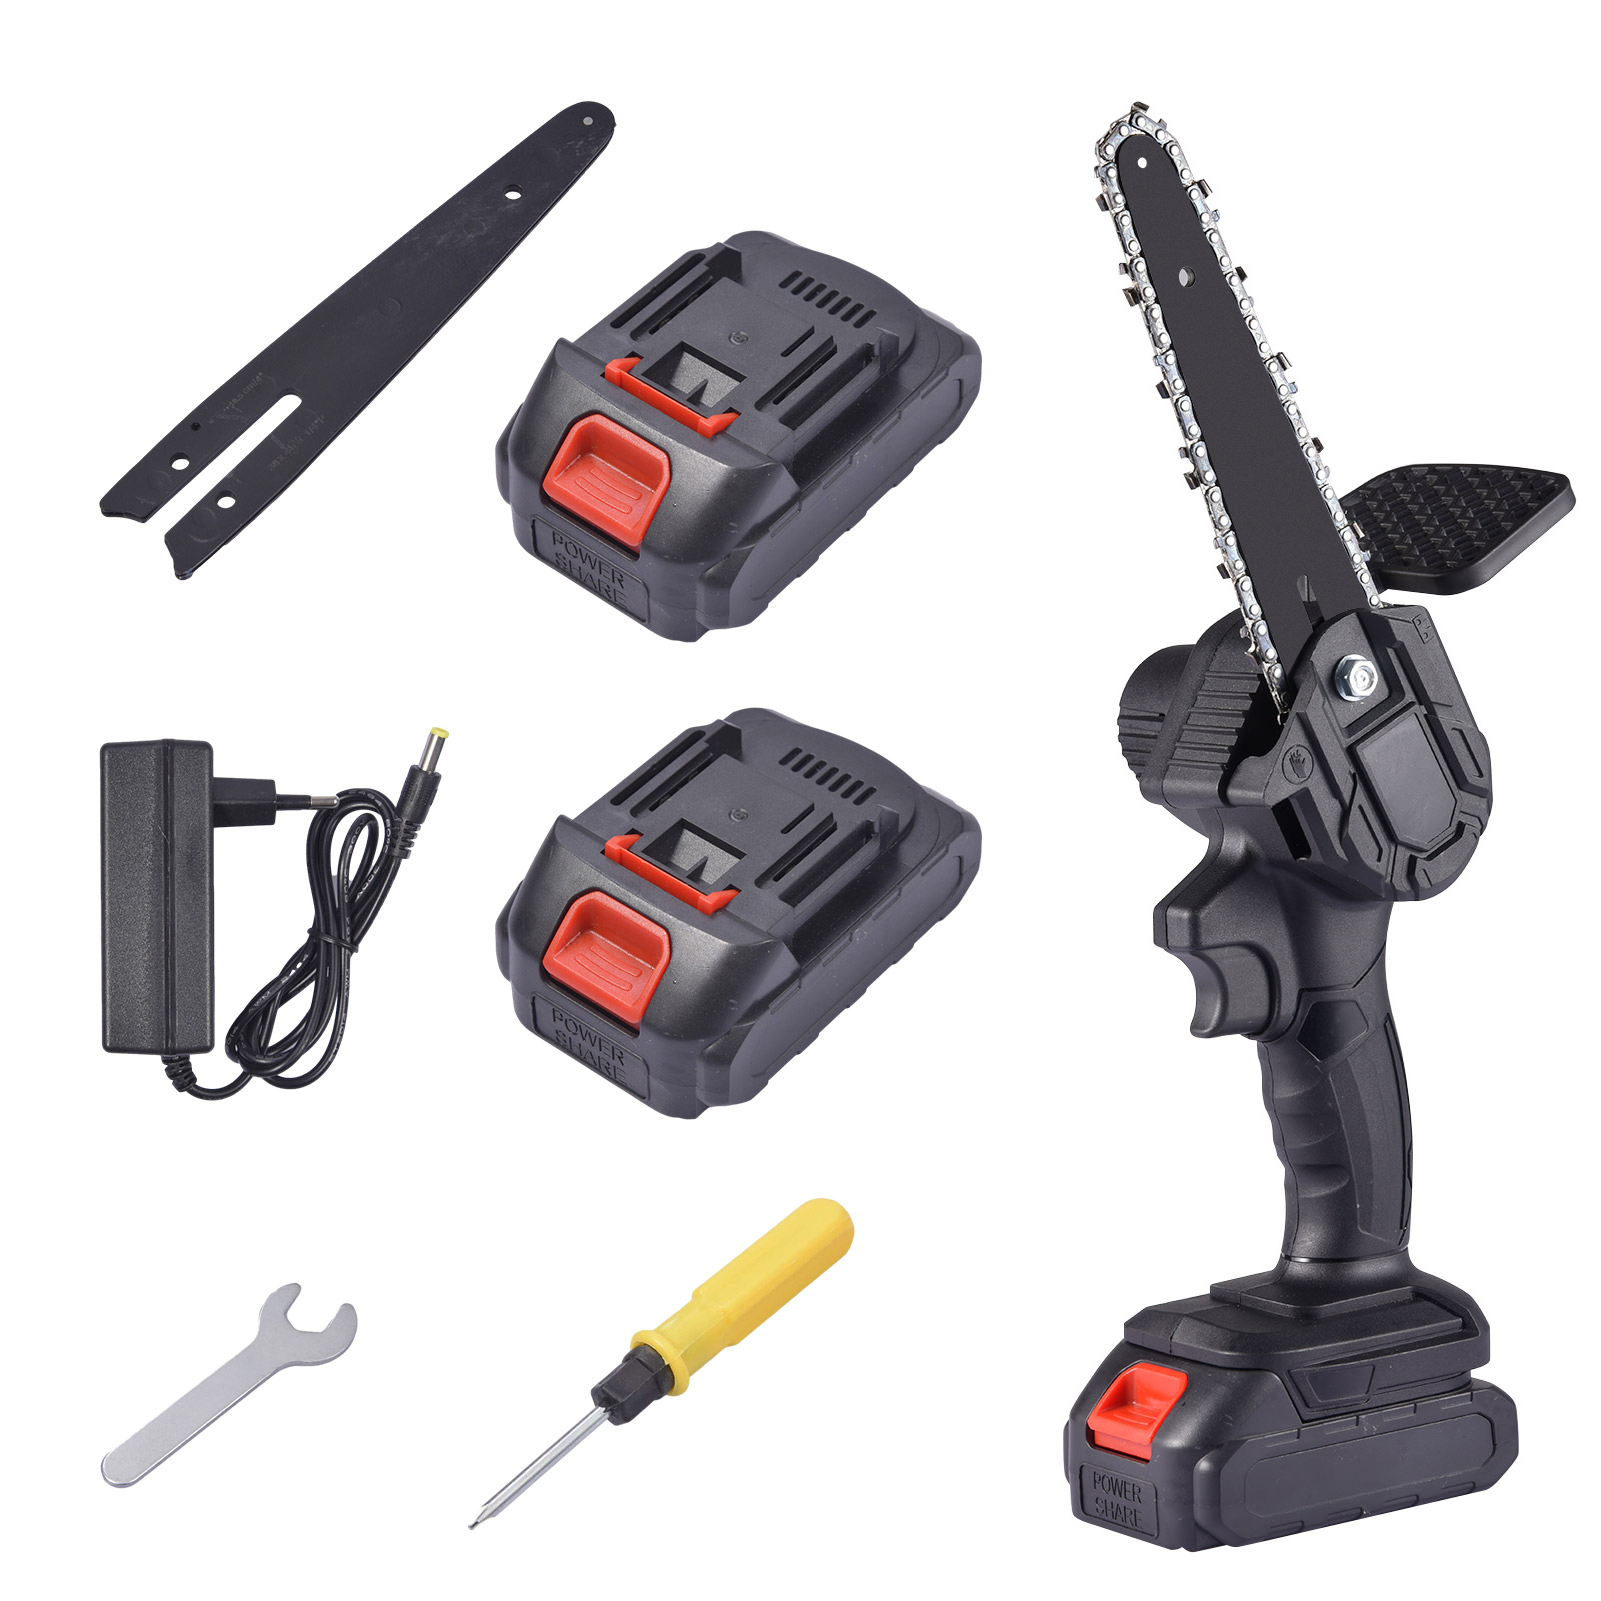 6 Inch Mini Electric Chainsaw Cordless Handheld Pruning Saw Portable Battery Wood Cutter Home Garden Logging Power Tool